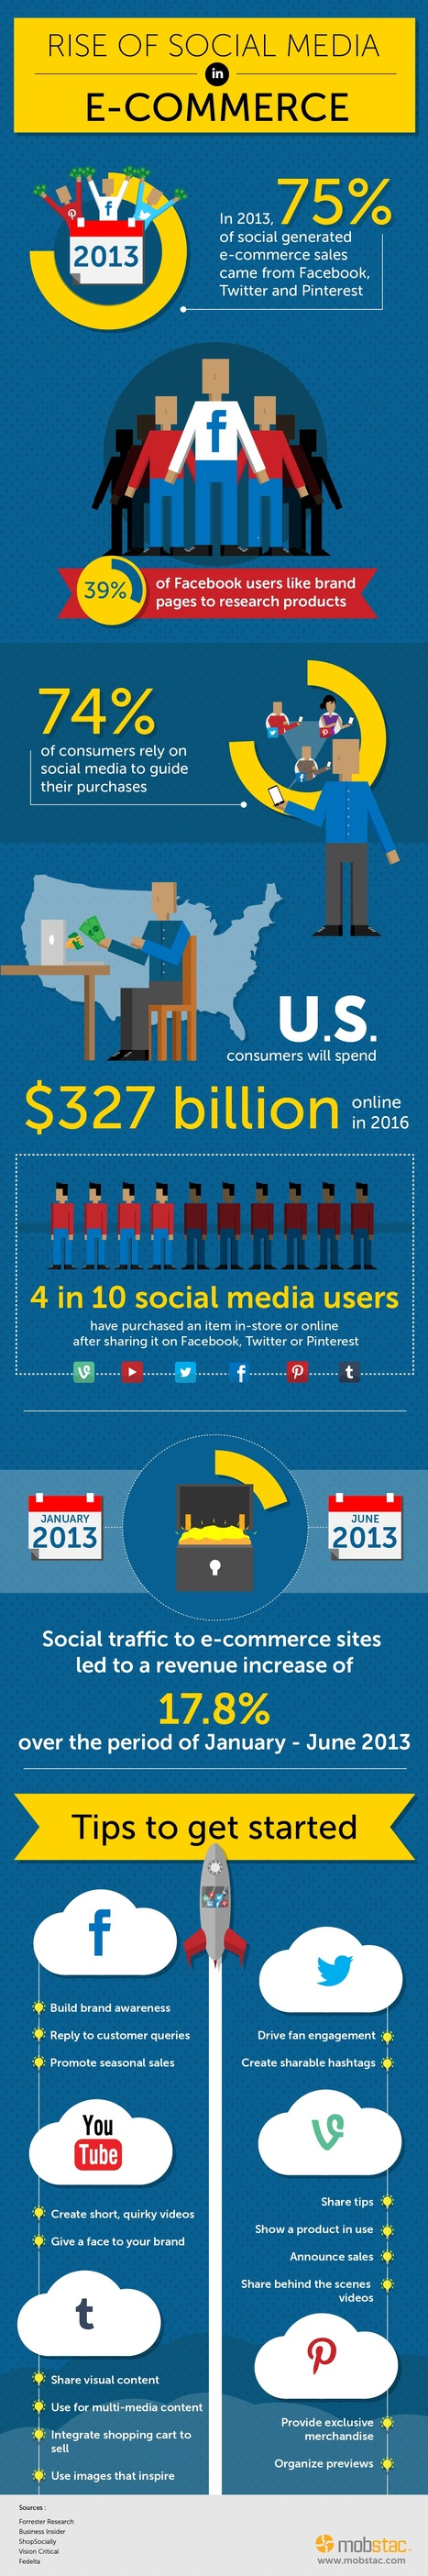 Rise of Social Media in Ecommerce [INFOGRAPHIC] | MarketingHits | Scoop.it